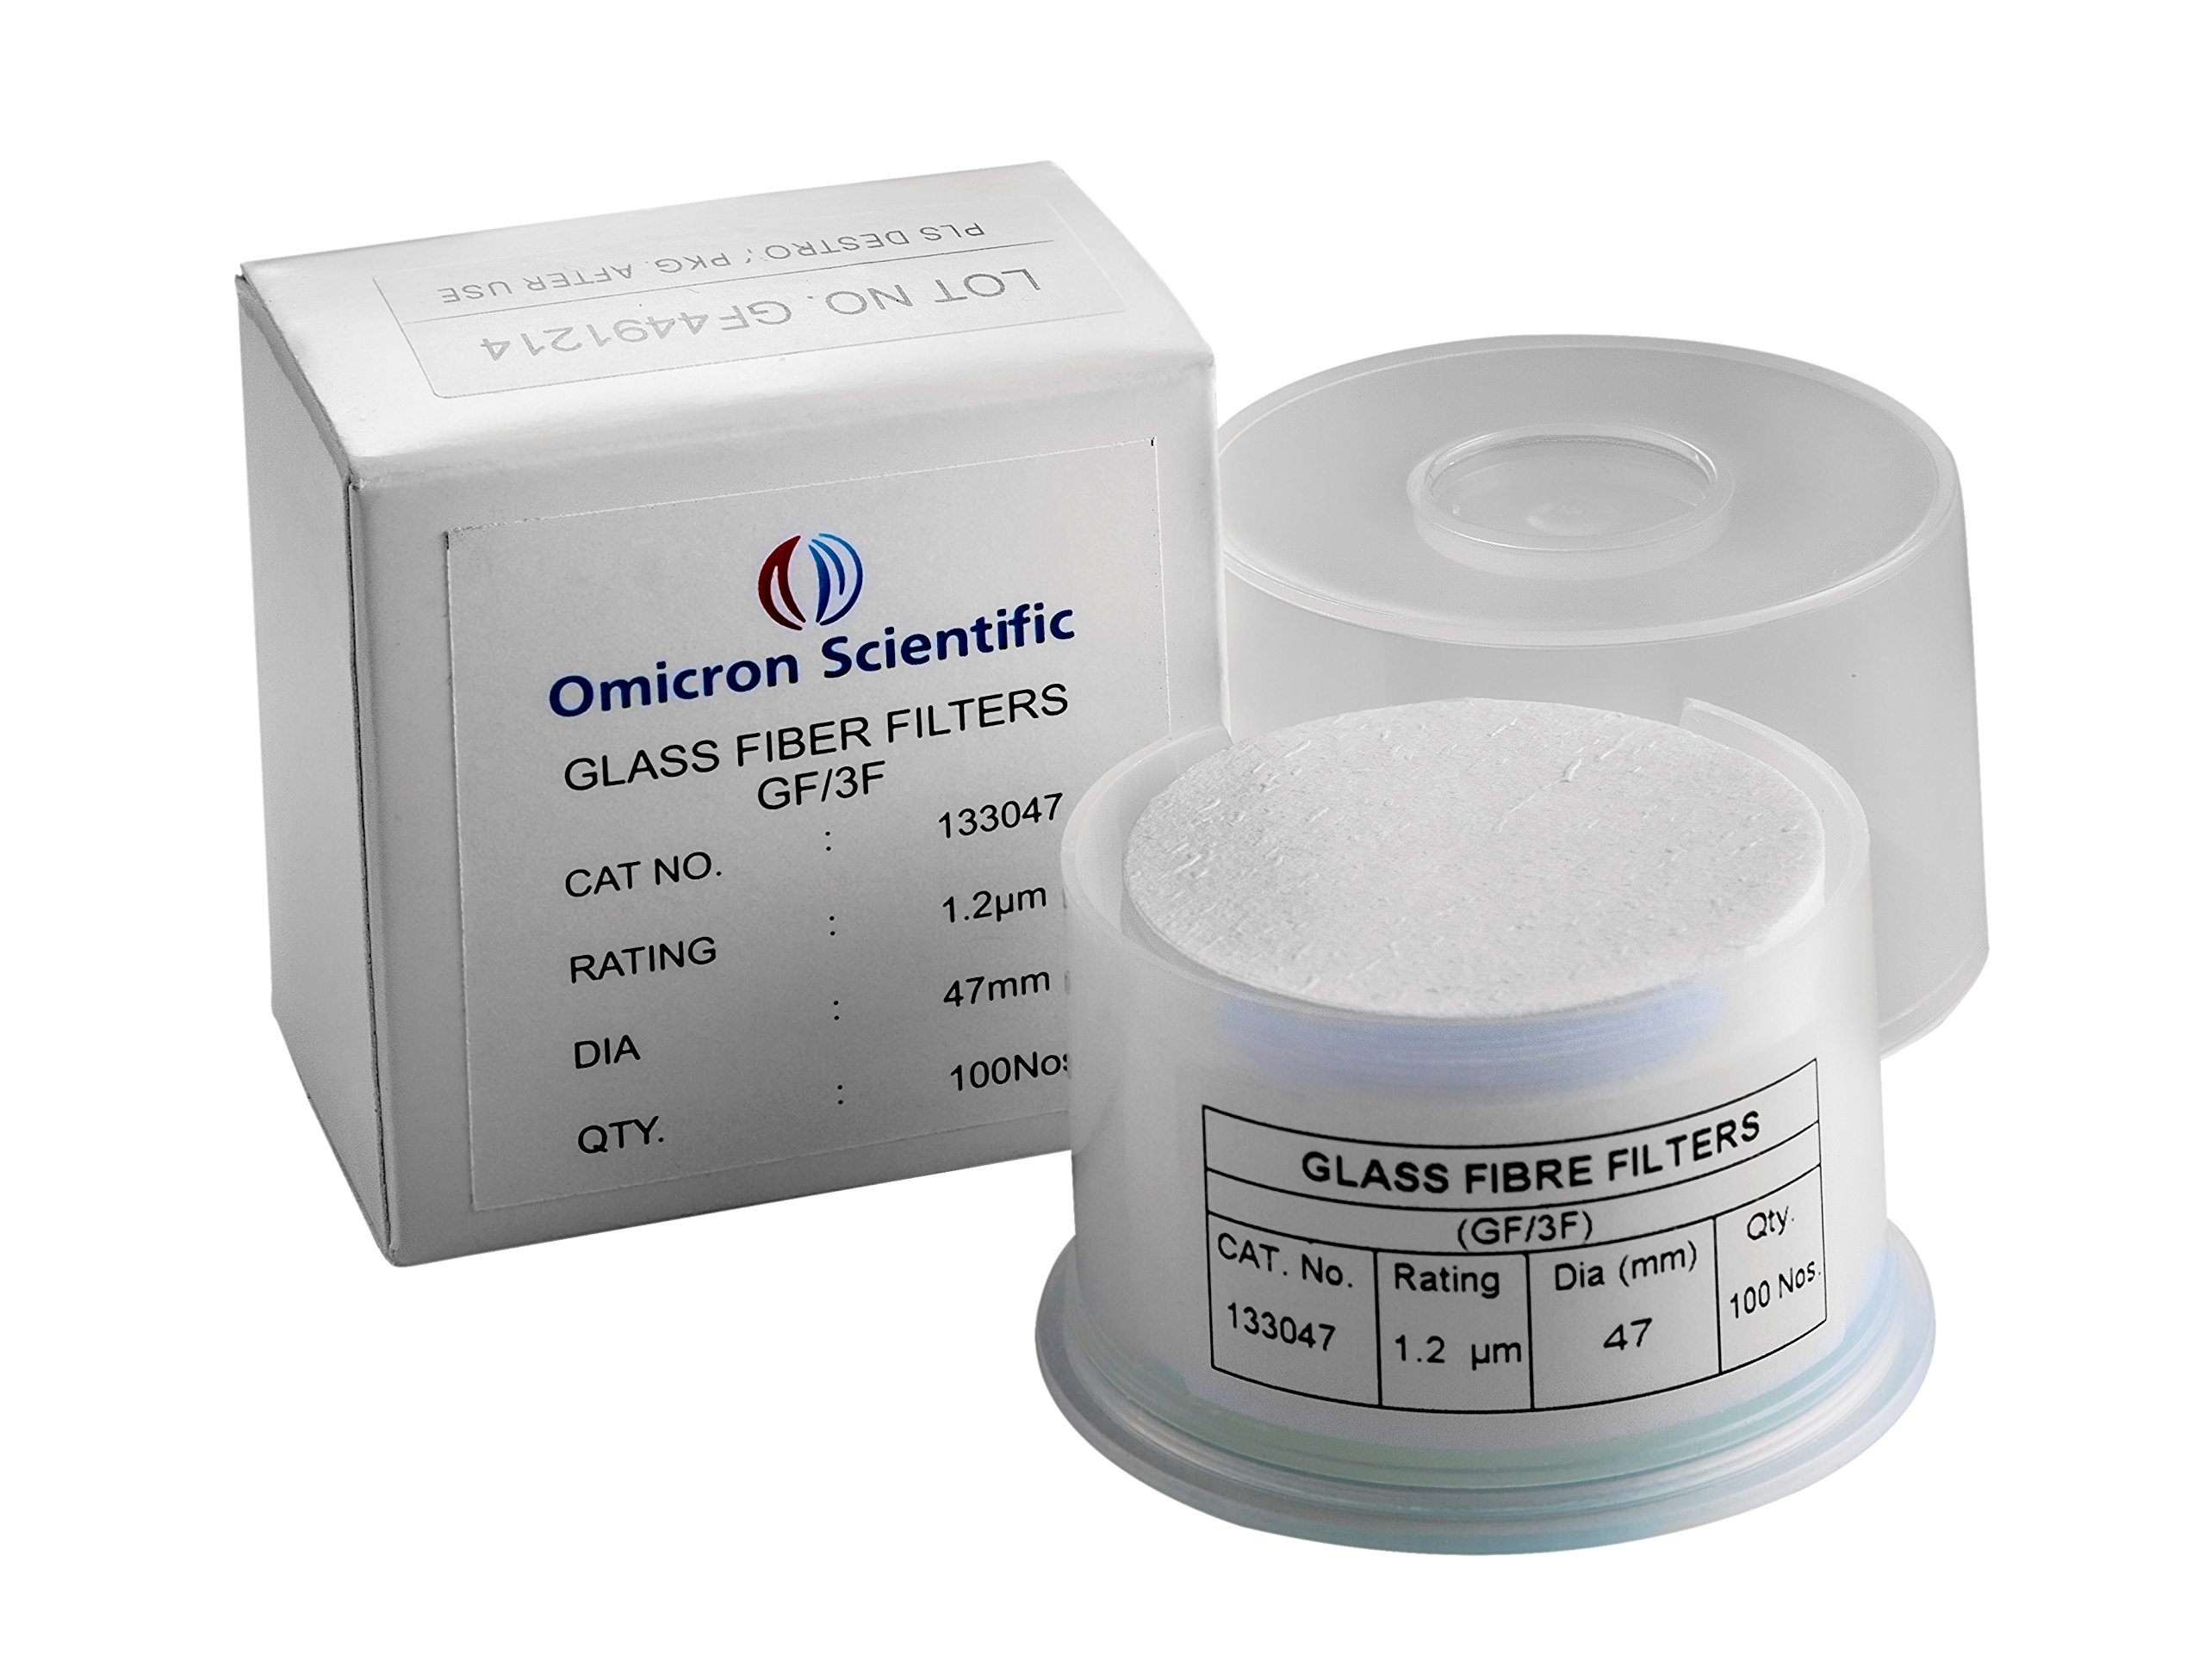 Omicron 133047 Borosilicate Glass Fiber Binder Free Filter, 1.2 μm, 47 mm (Pack of 100) by Omicron